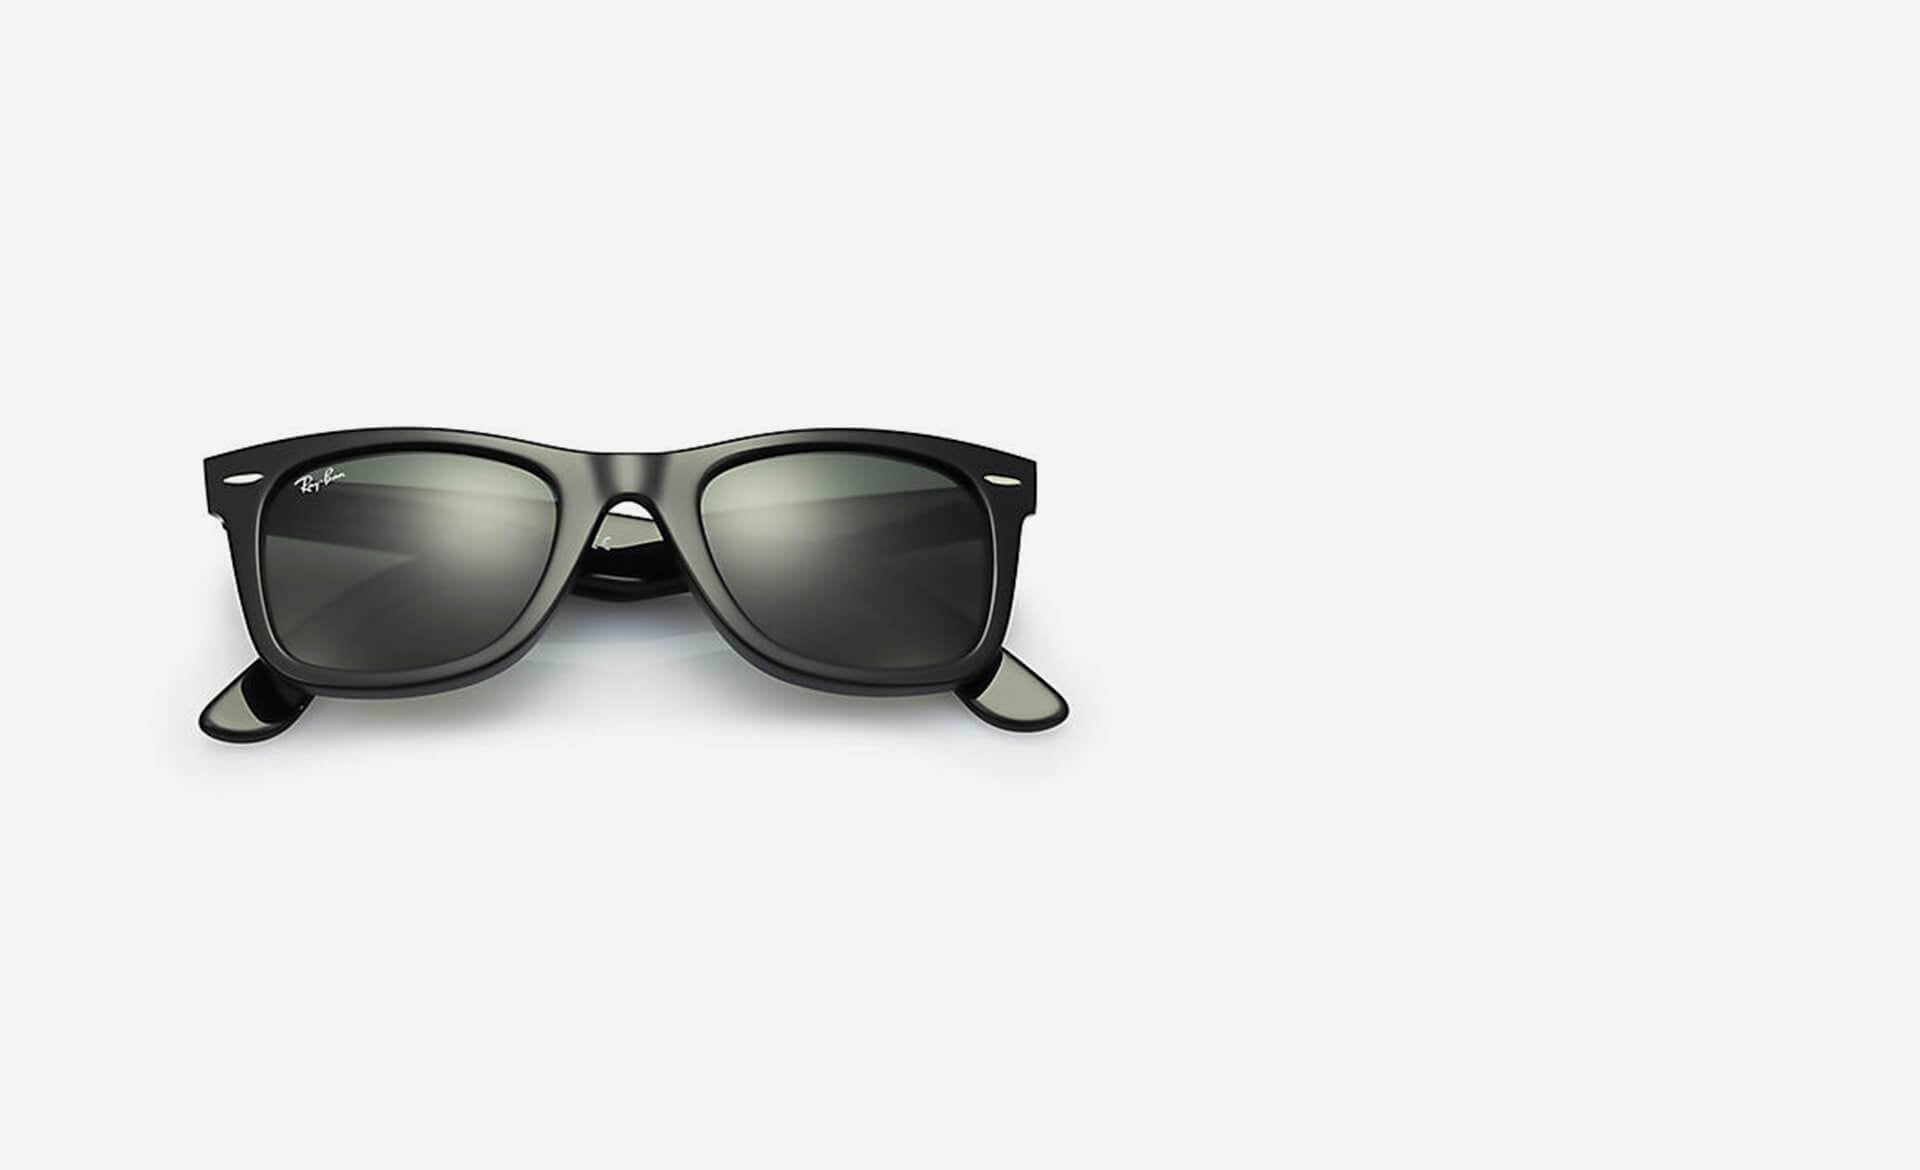 Ray Ban 47mm Wayfarer (small sunglasses)